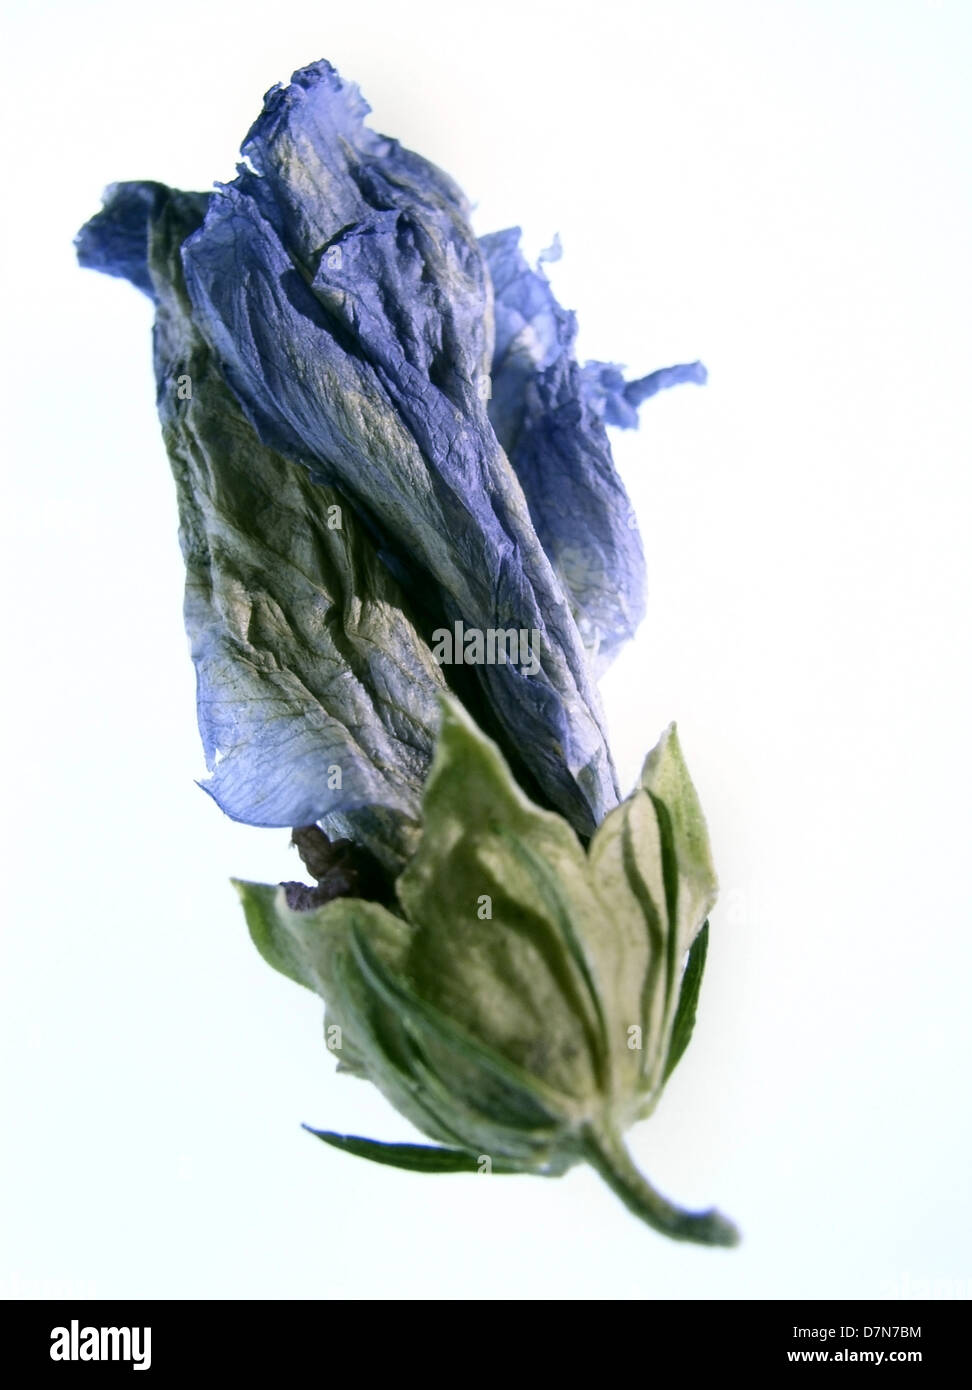 dried blue hibiscus flower bud on white, ©mak - Stock Image